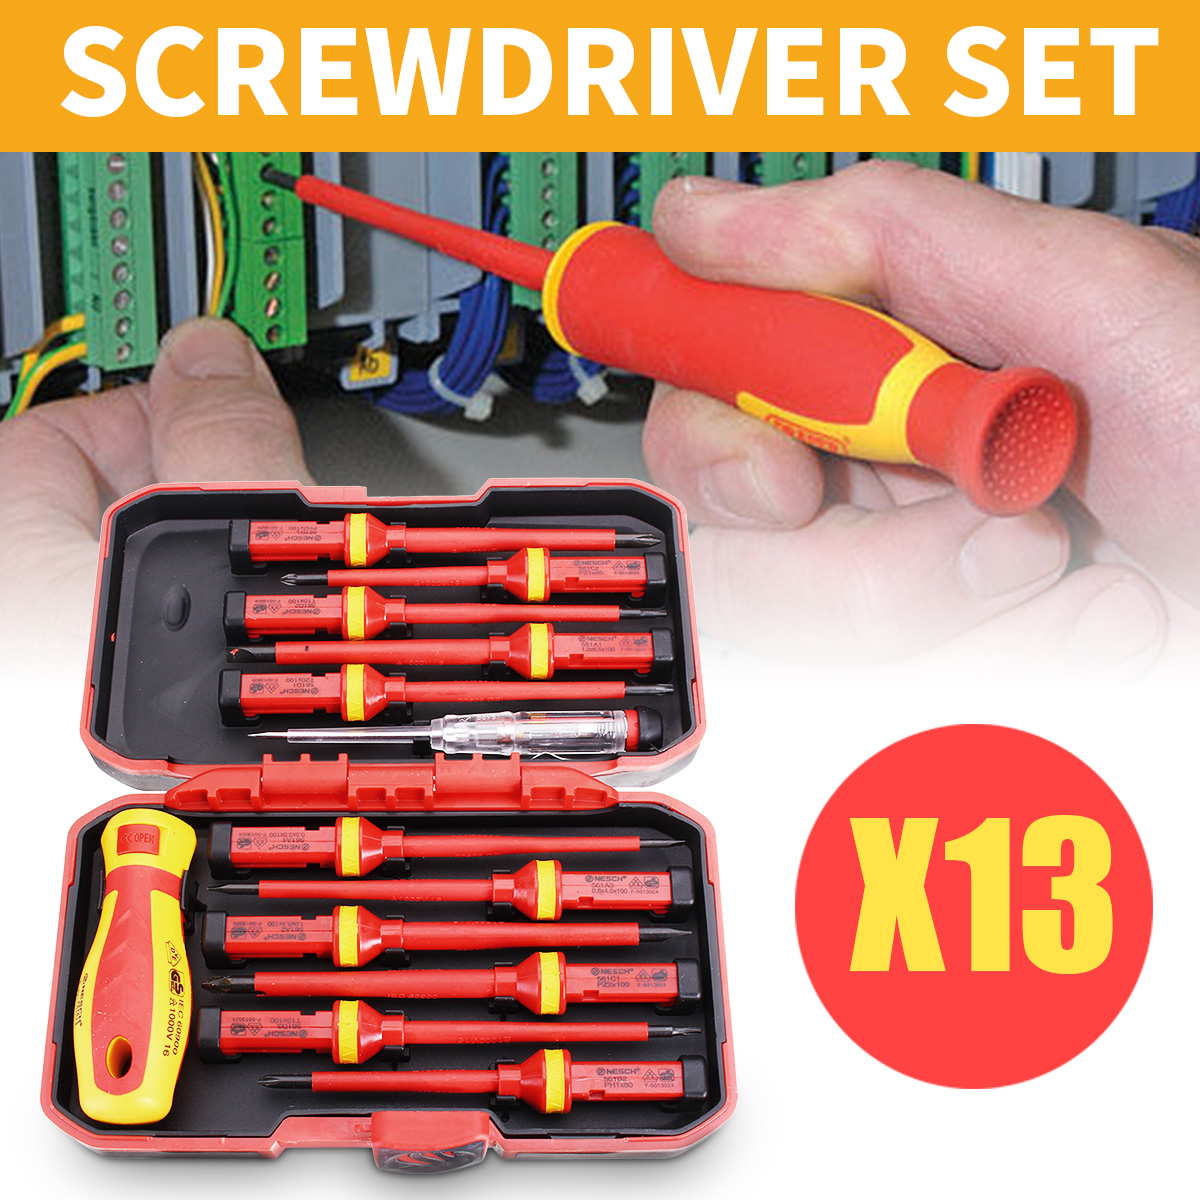 13Pcs Insulated Screwdriver Set 1000V Magnetic Phillips Slotted Torx Hand Tools With Detachable Handle